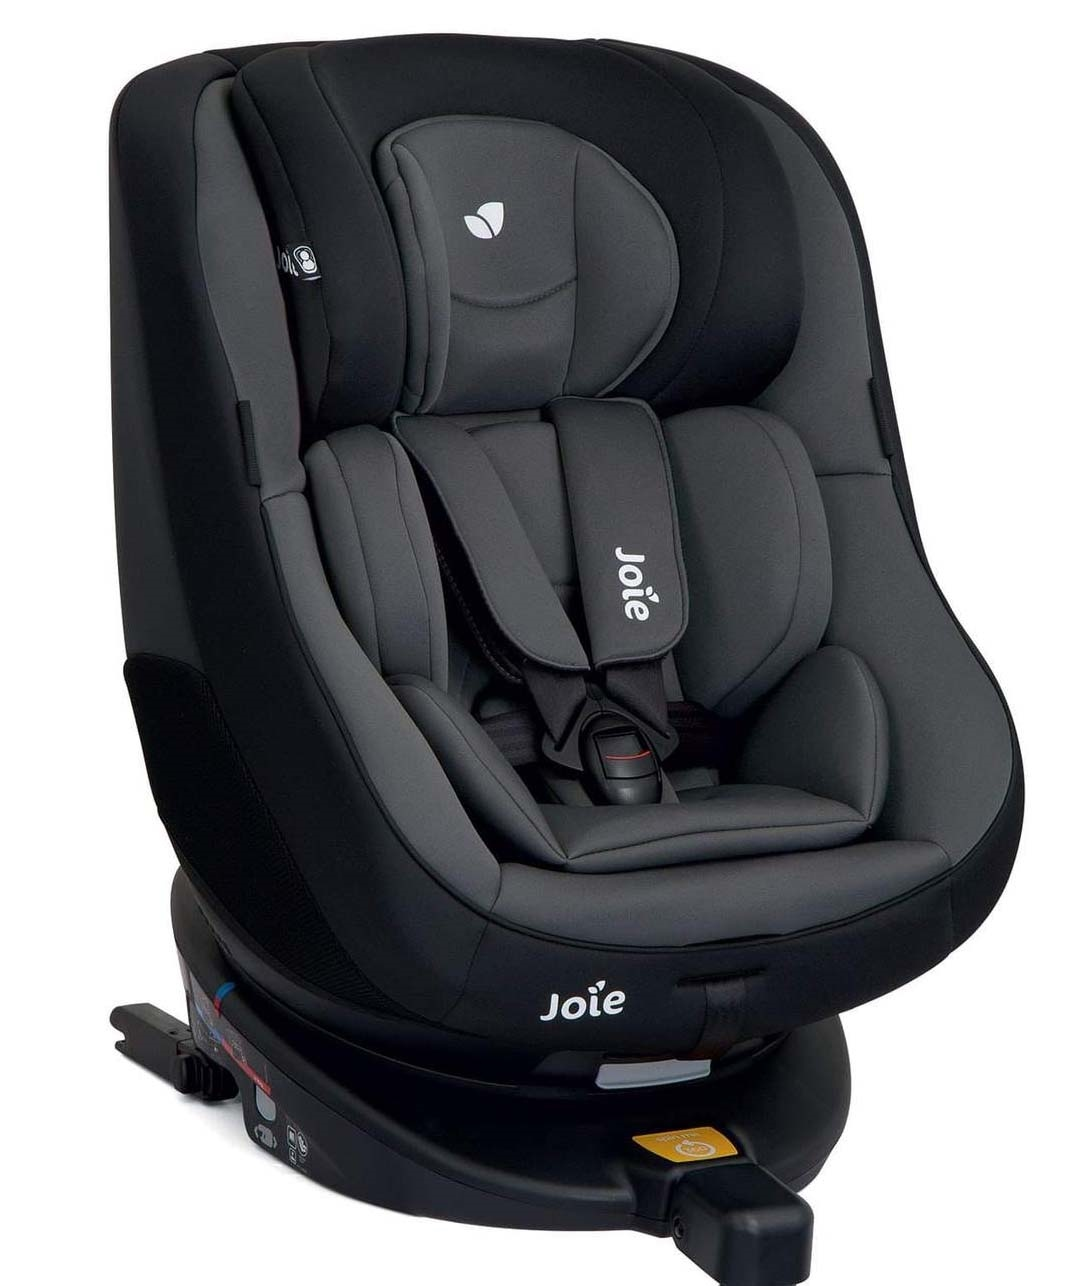 Joie Spin 360 Group 0+/1 Car Seat 1